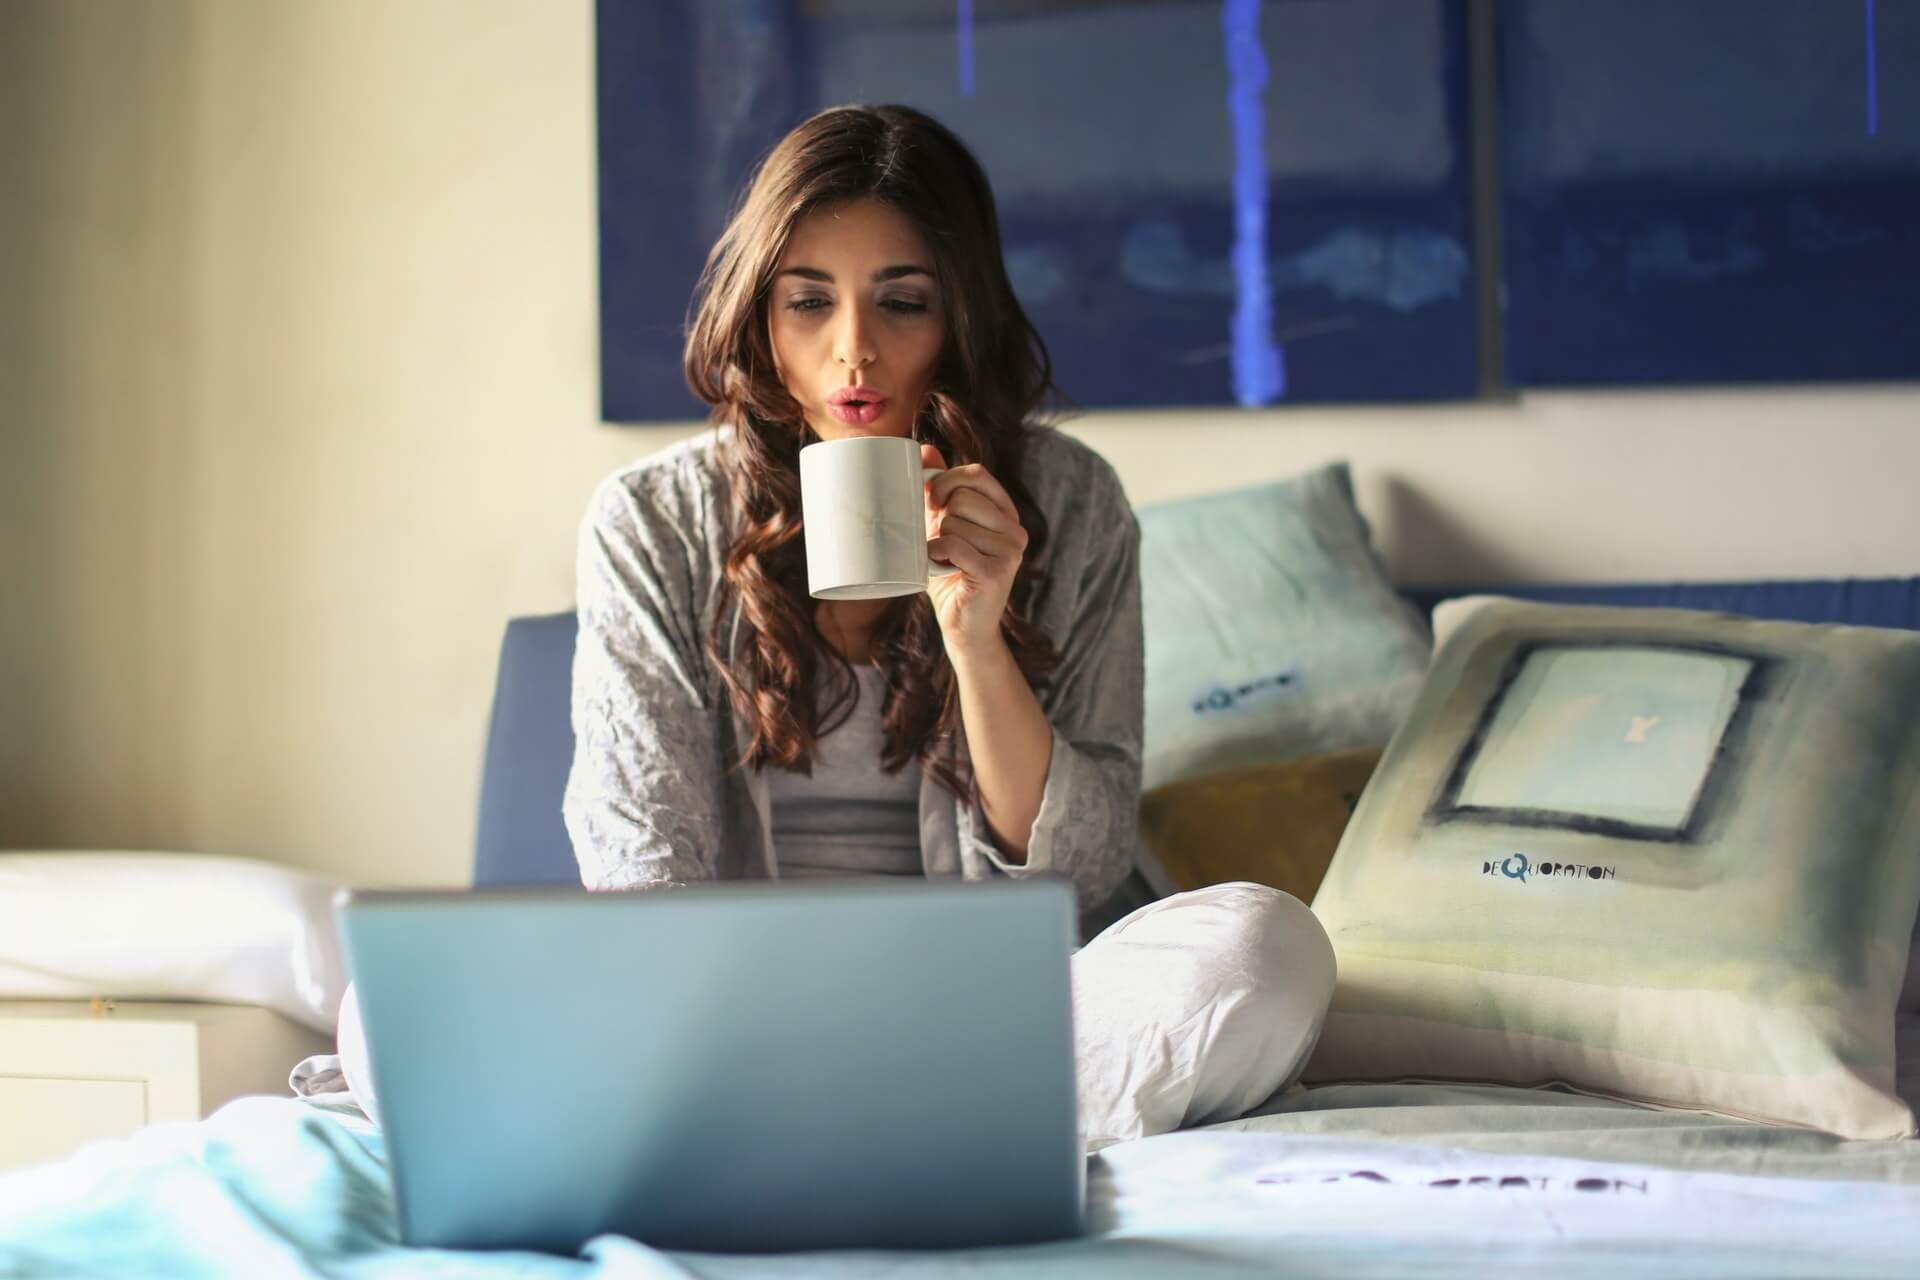 Woman sitting on bed using laptop and drinking coffee using an online chat room.